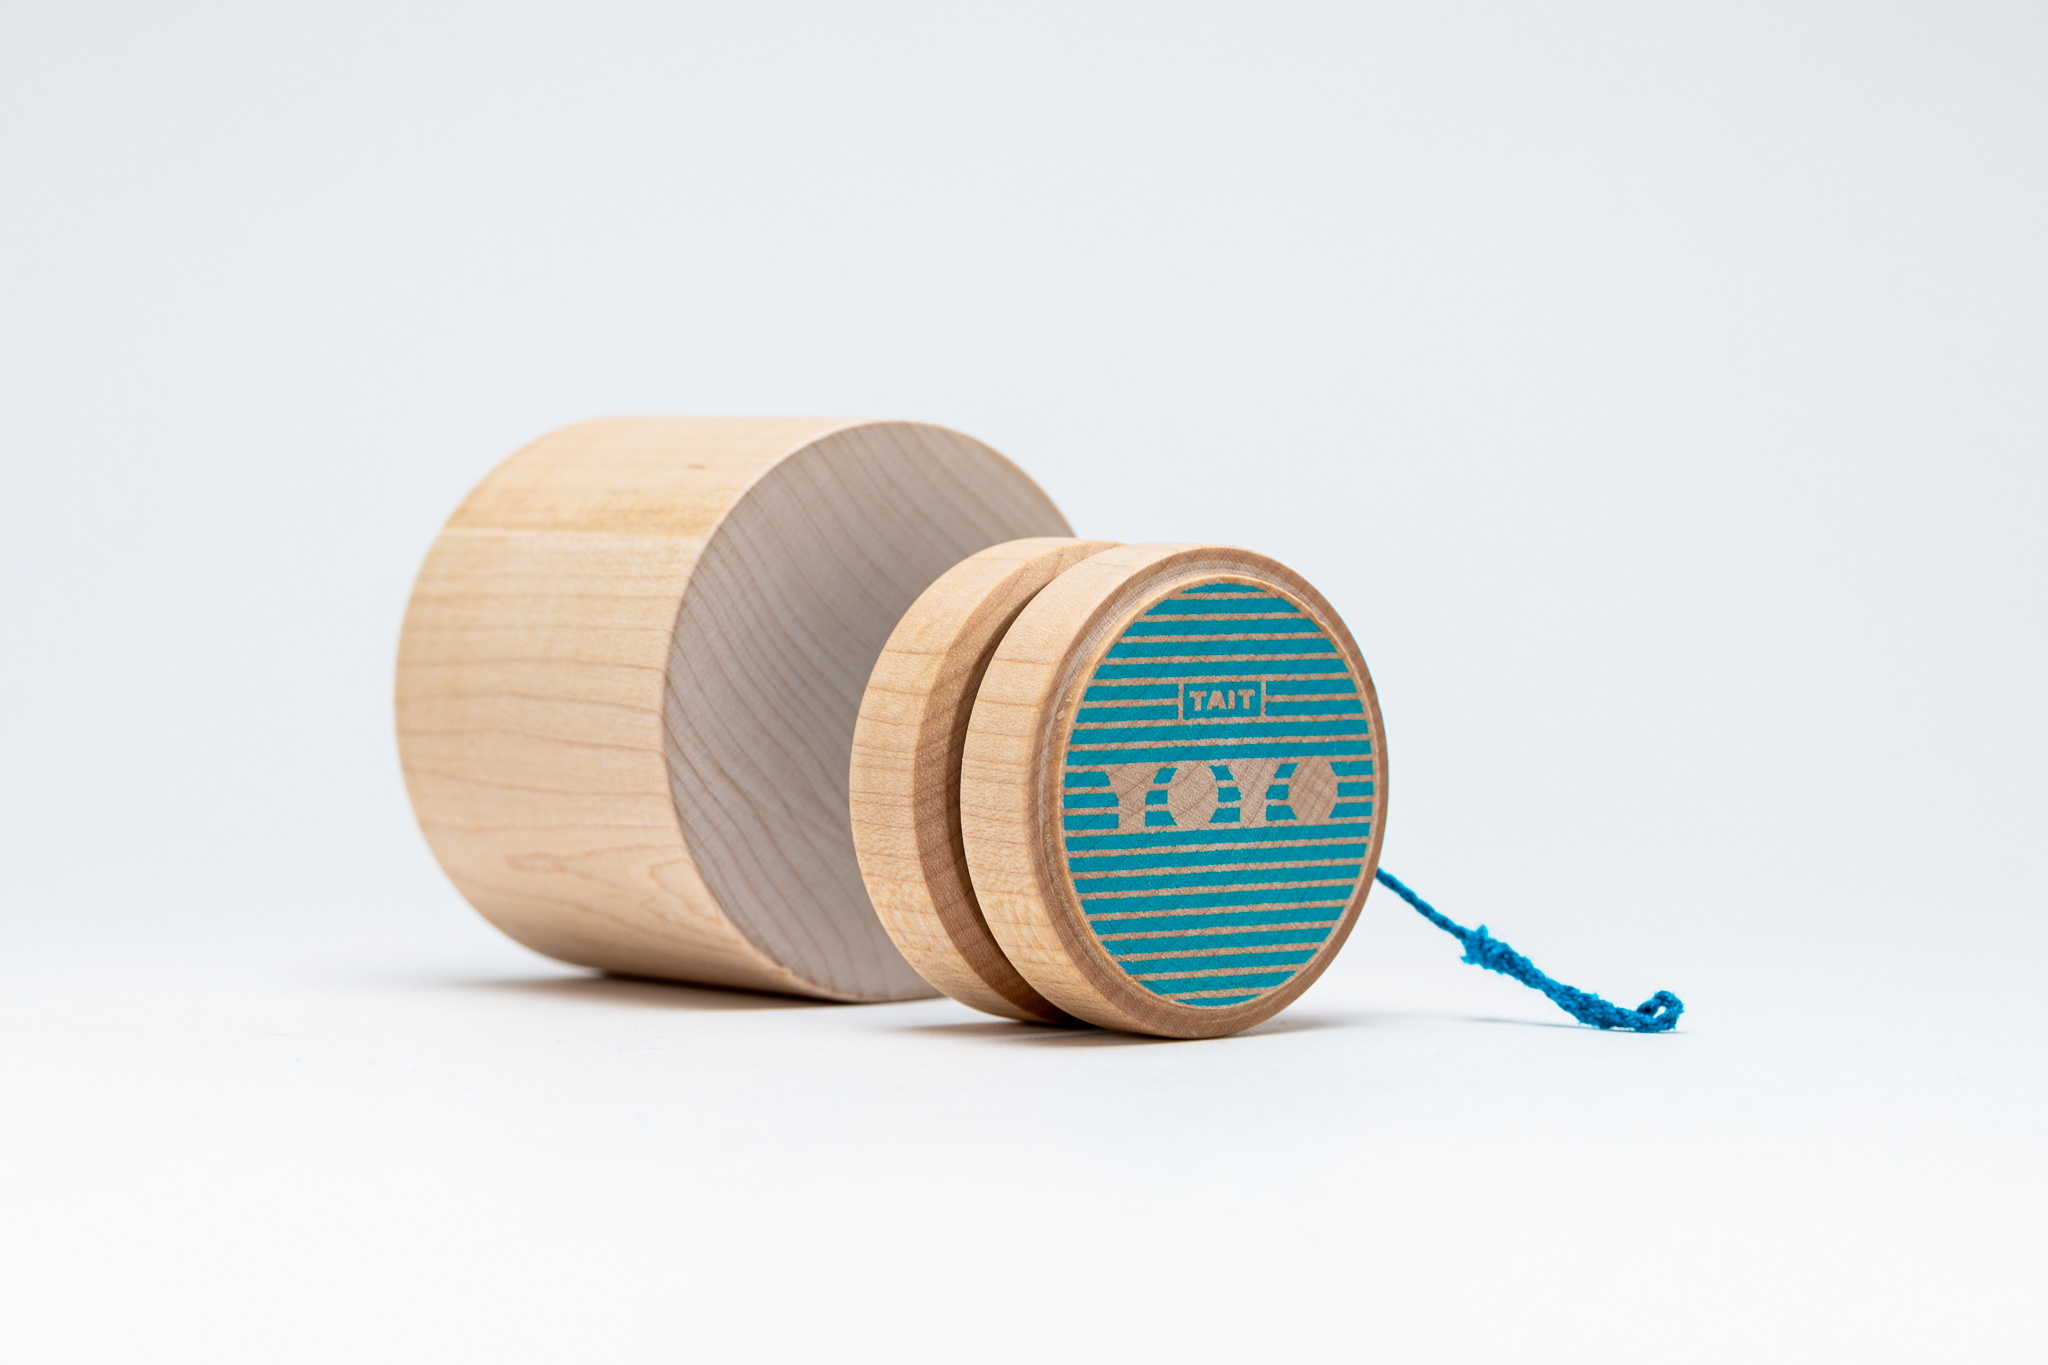 THE BODY - –SOLID HARD MAPLE–Our Sling-Slang YOYOs are crafted from a single piece of hard maple wood. Most YOYOs are made using glue and dowels. By designing from a single piece instead, our YOYOs are made to last a lifetime.